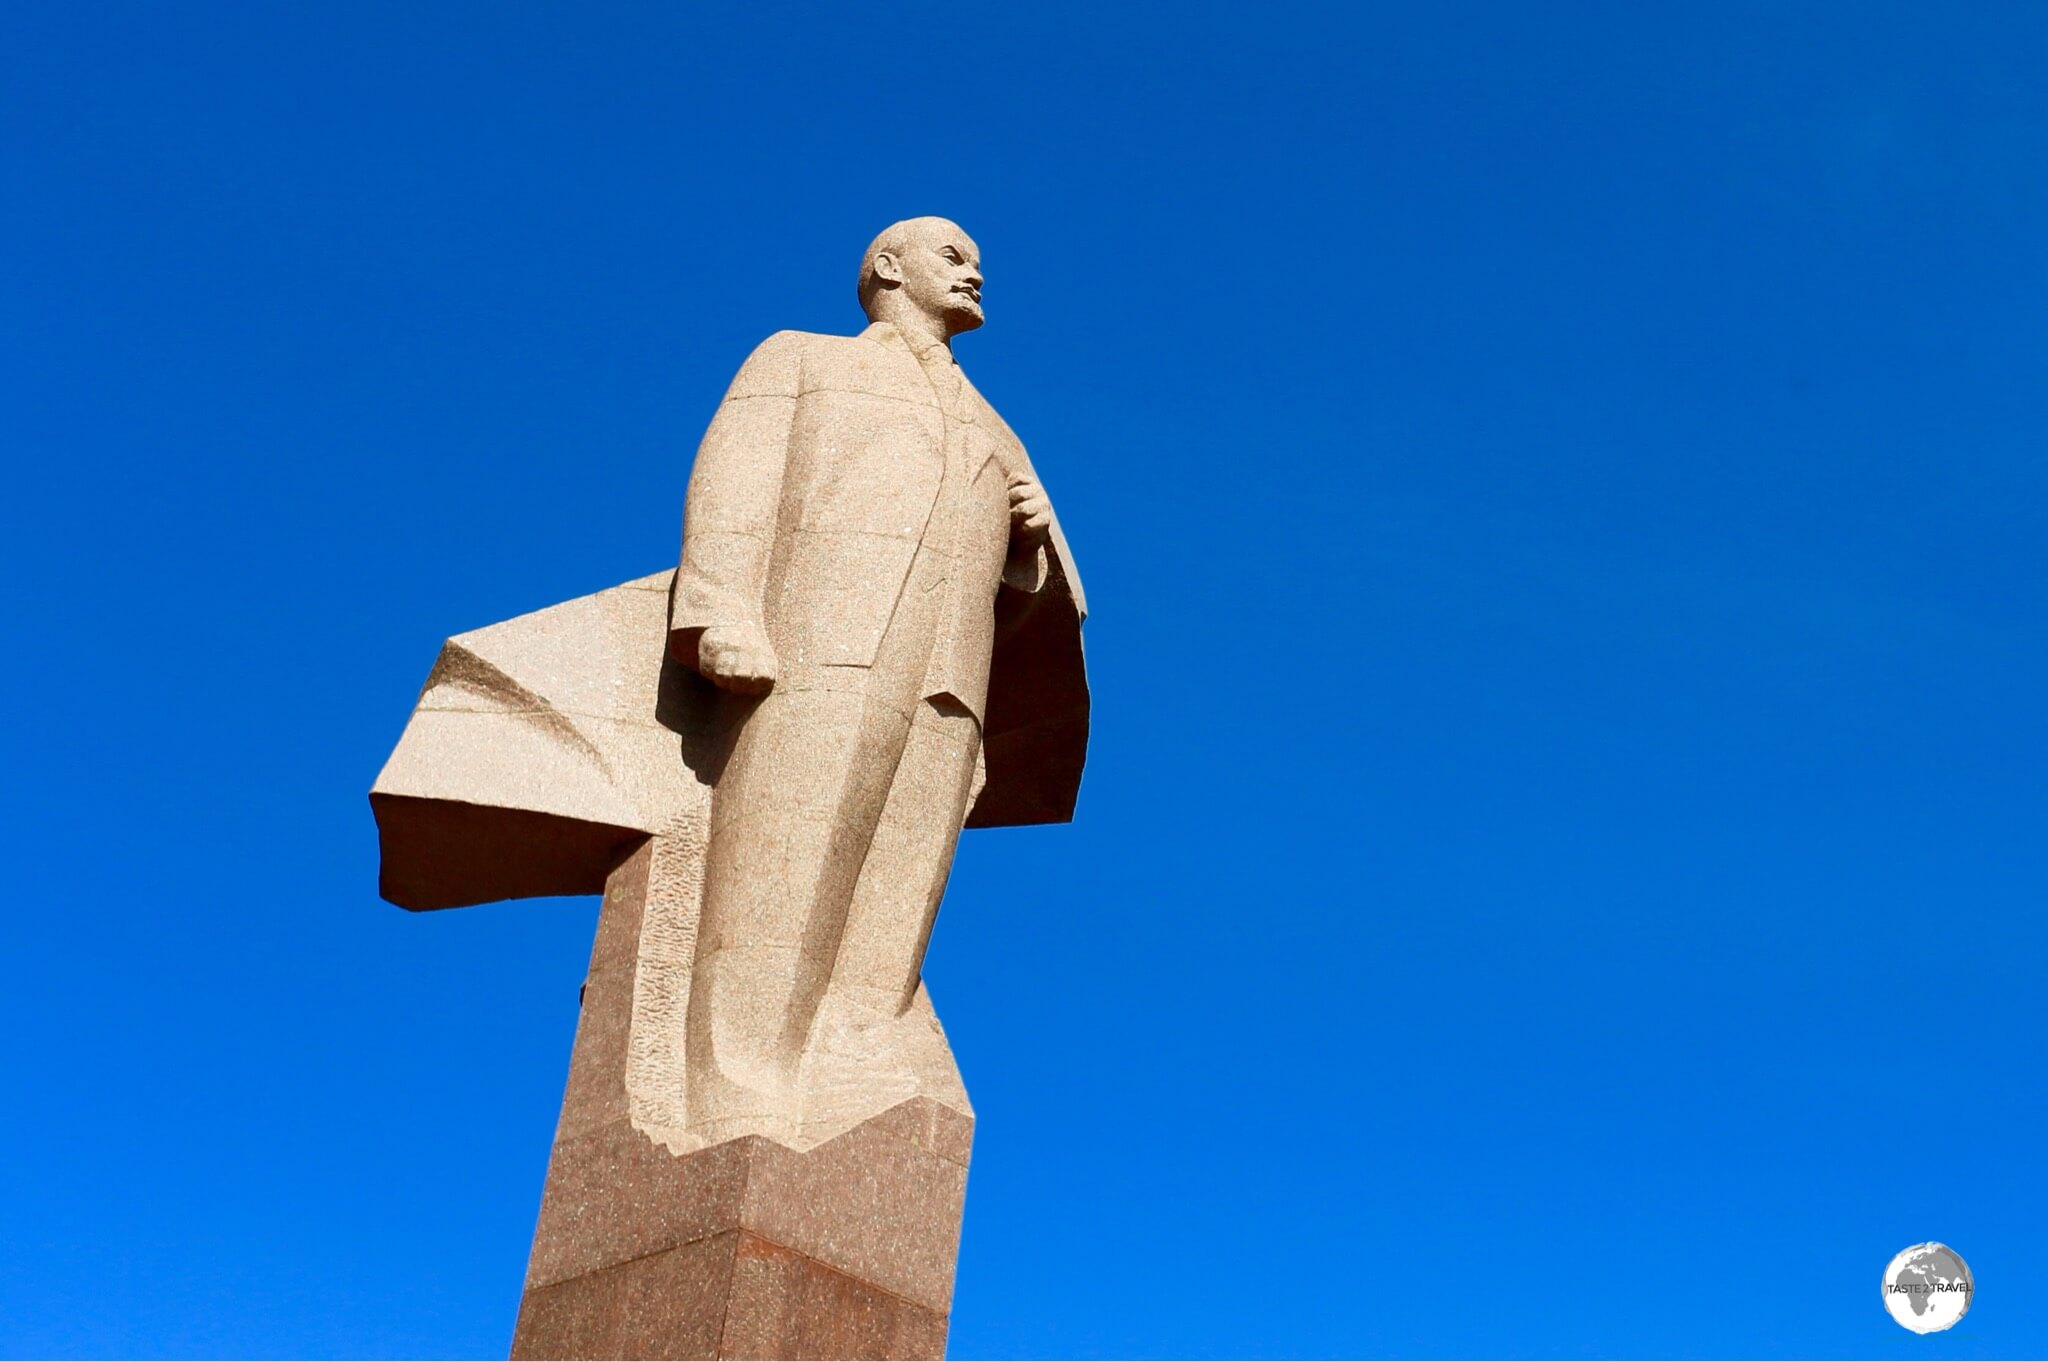 This cloaked statue of Lenin greets all visitors arriving in Tiraspol.